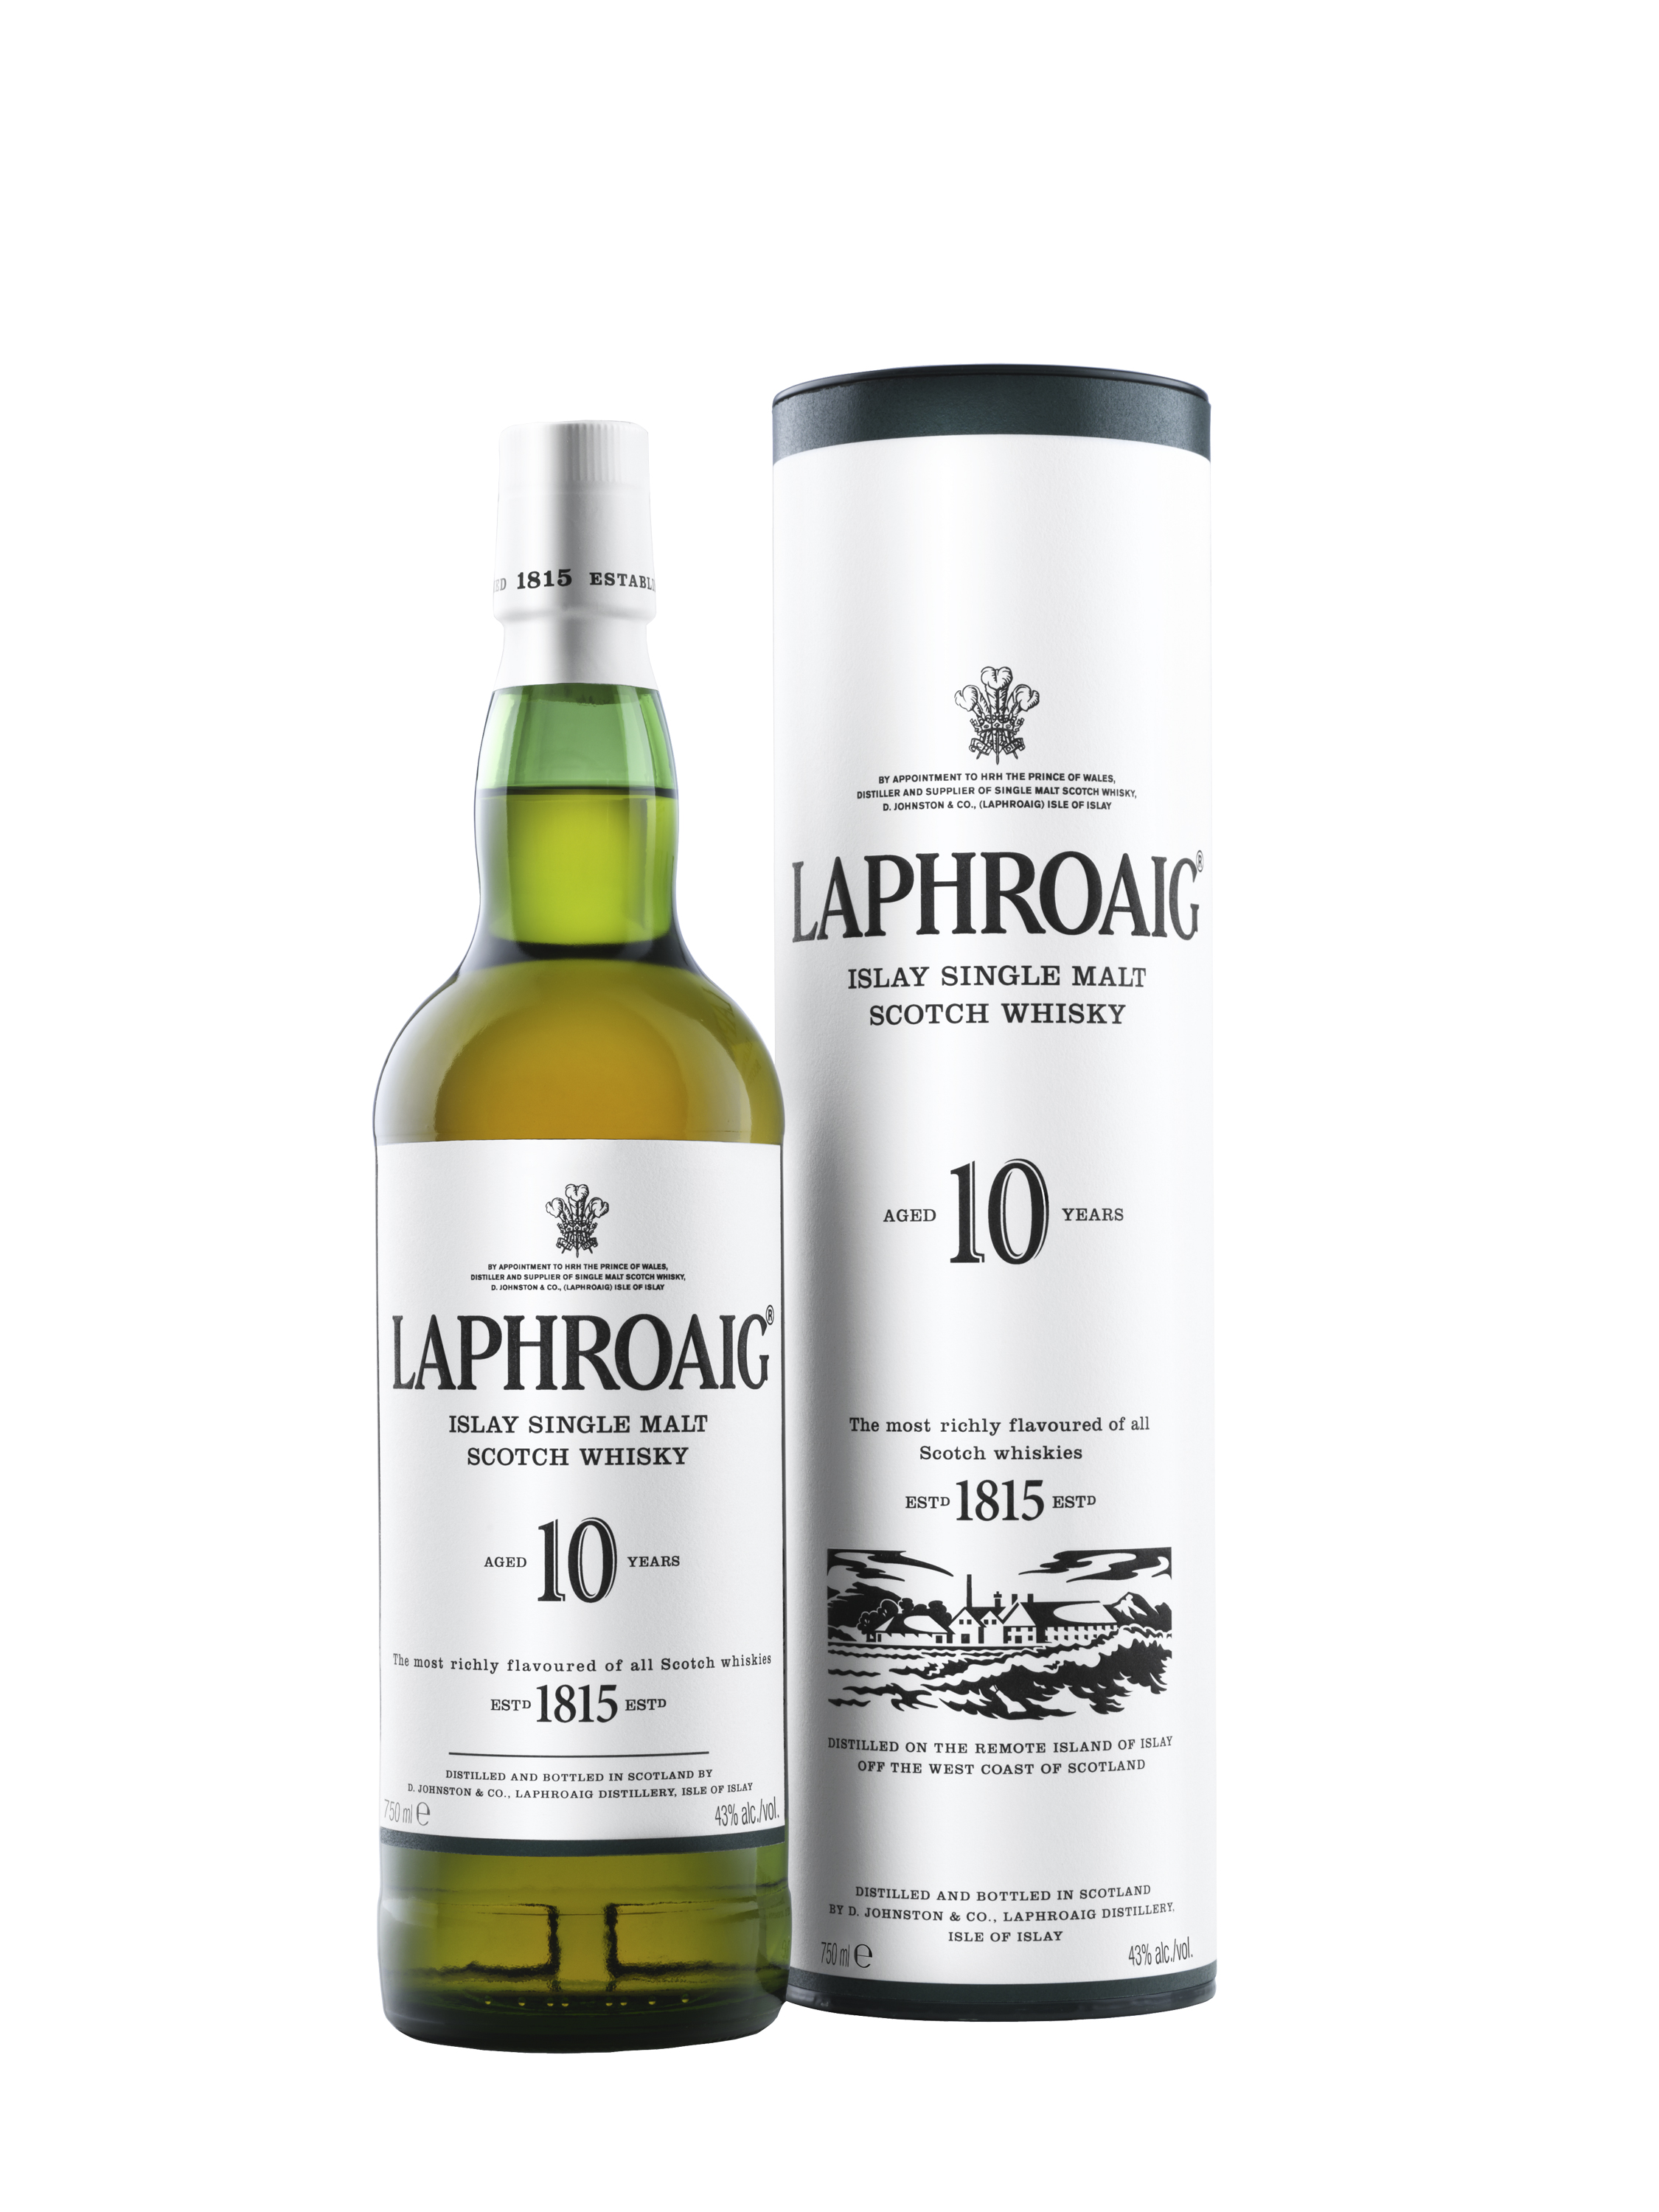 National Scotch Day: Laphroaig!